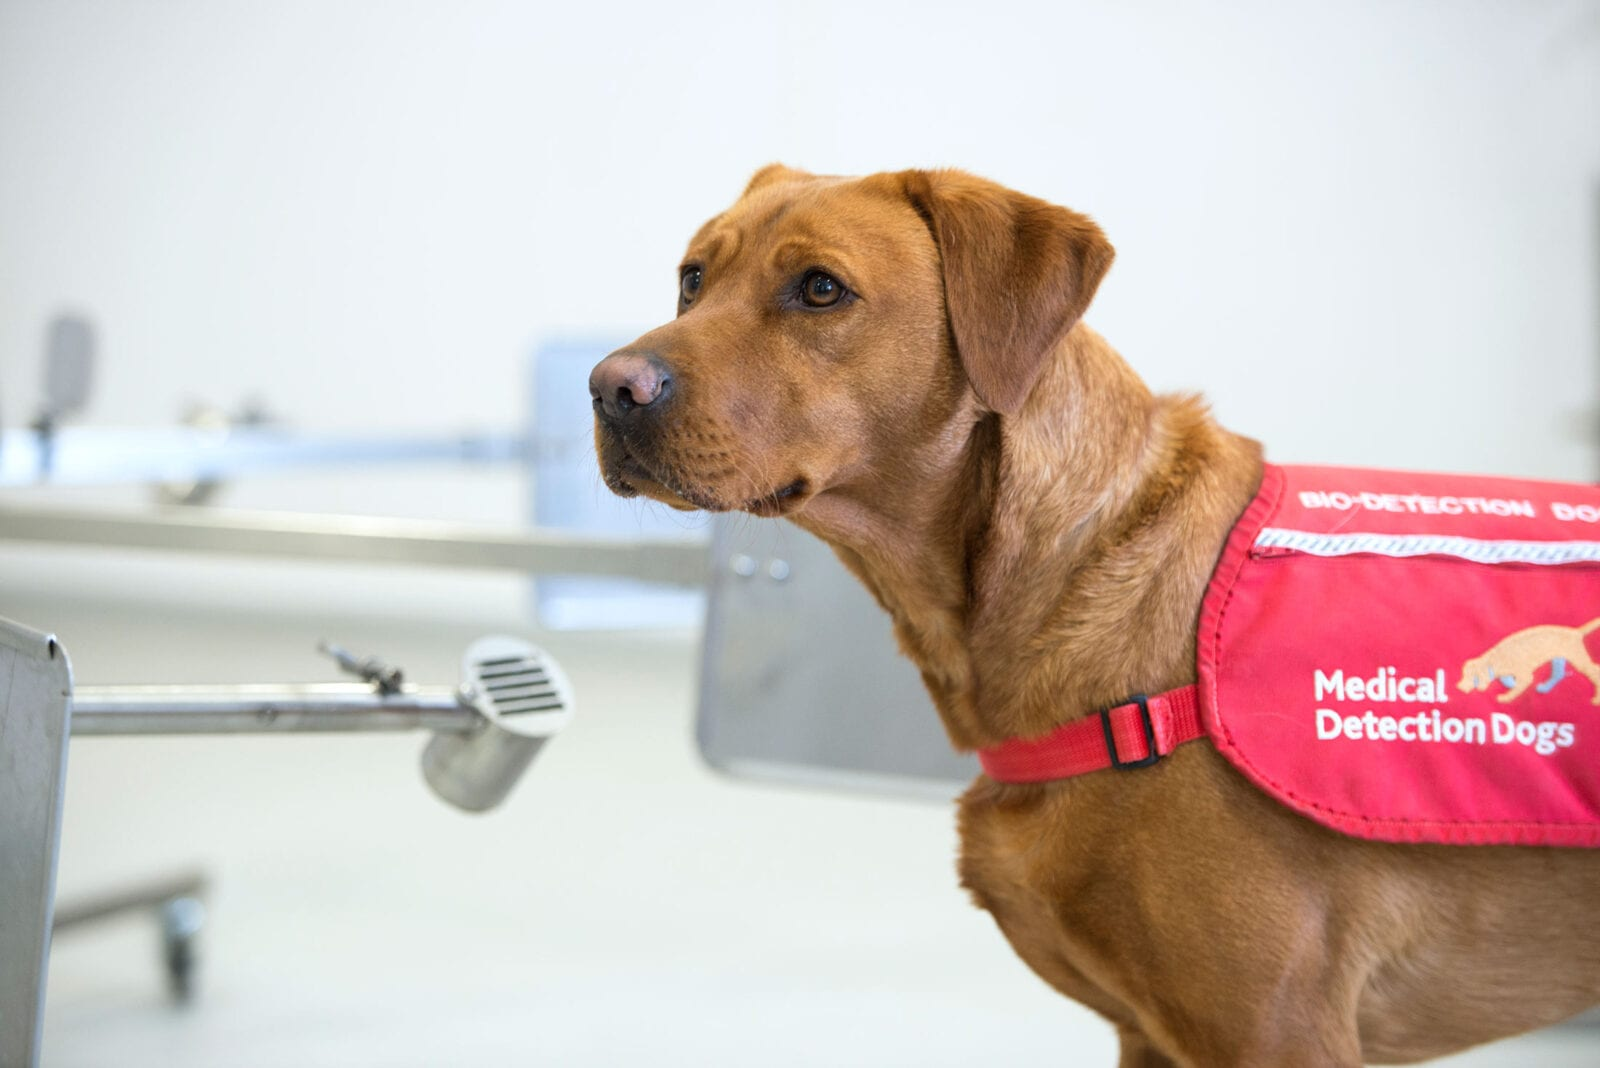 Sniffer dogs that can detect COVID-19 in humans could be coming to Manchester, The Manc